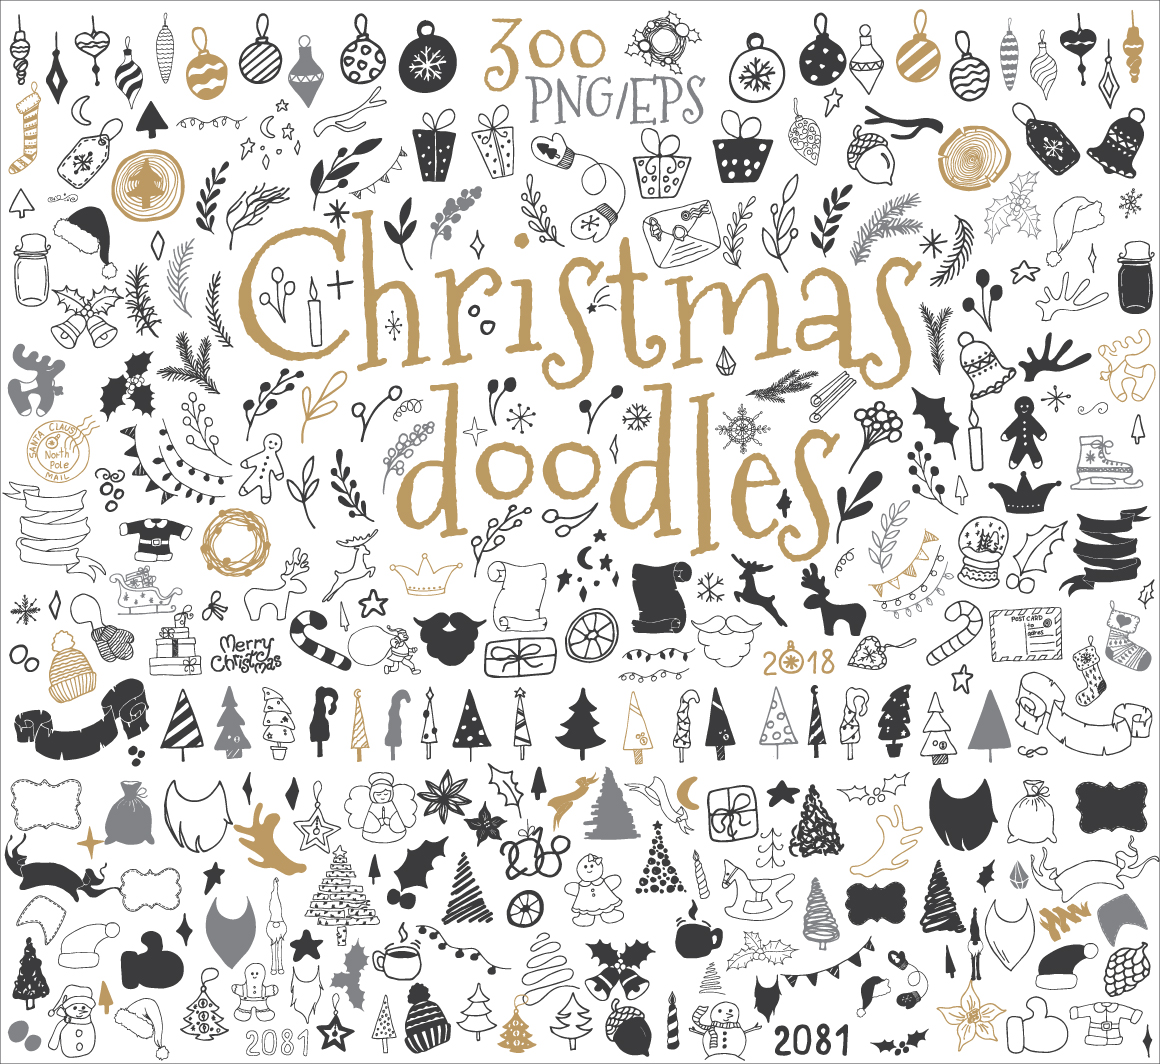 300 Christmas doodle icons and design elements ClipArt example image 2